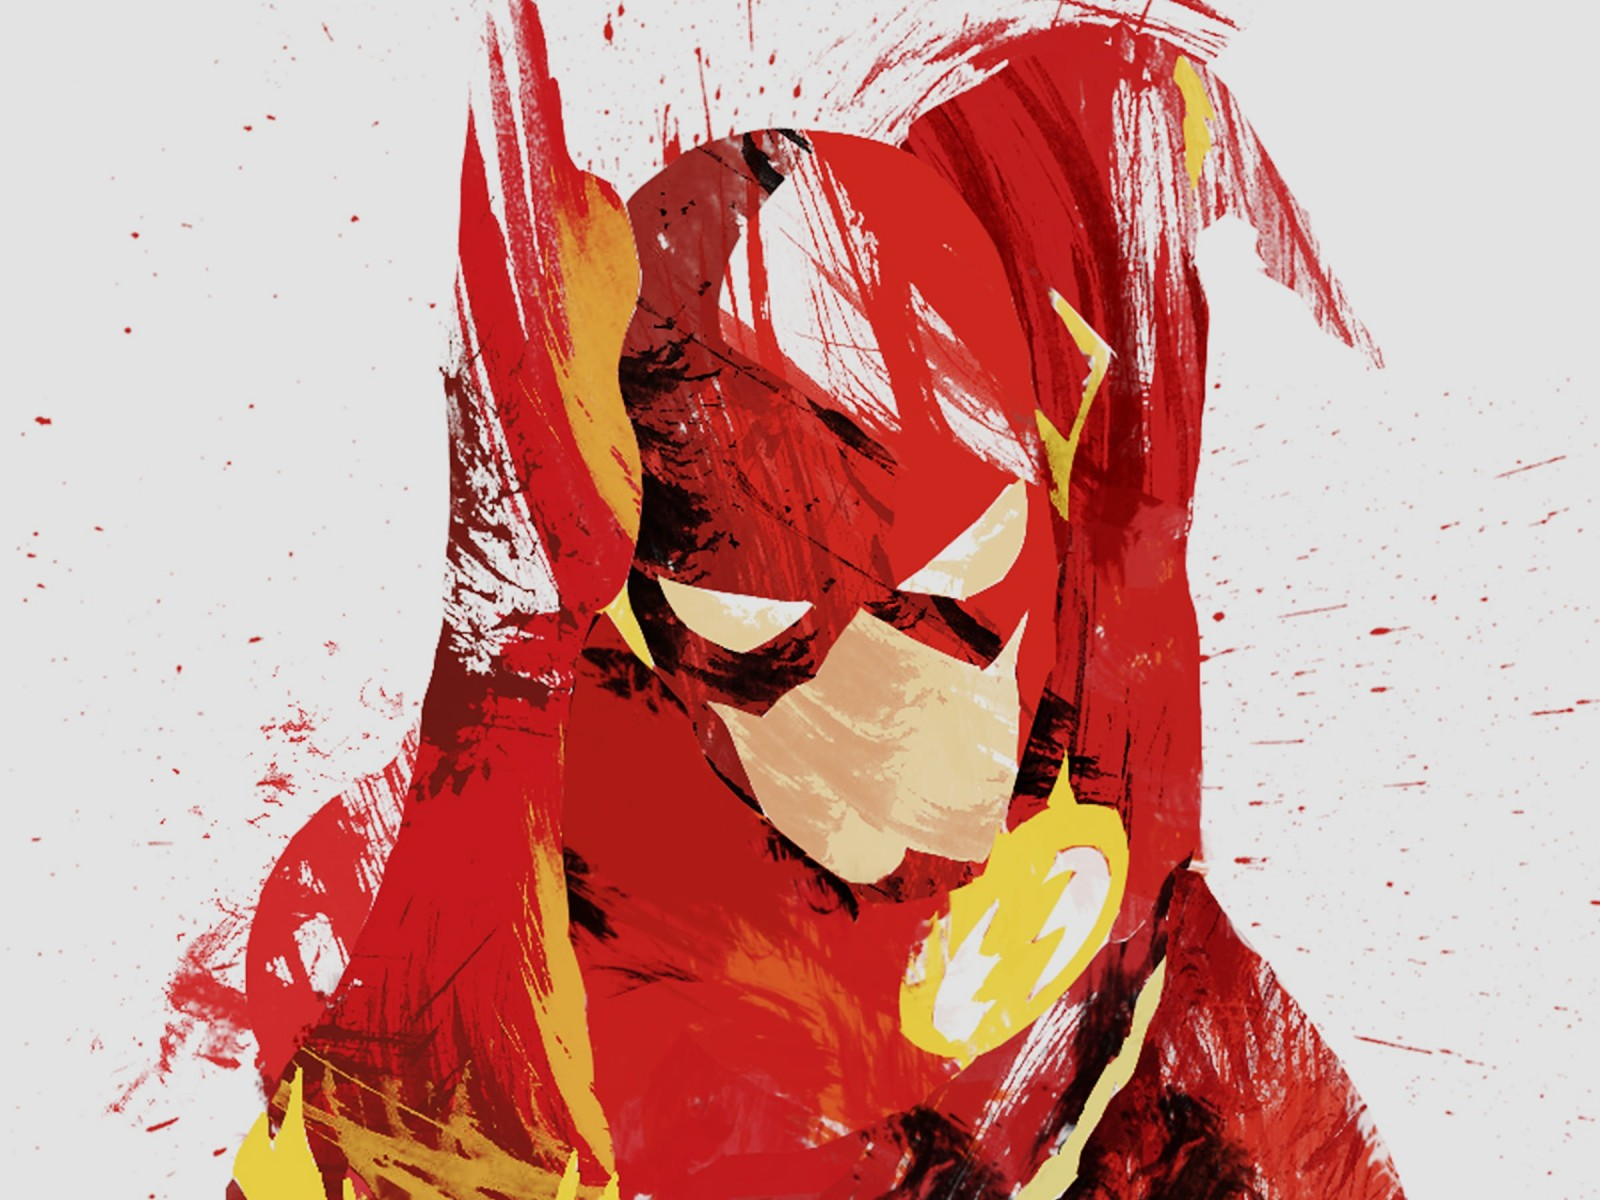 The Flash Illustration Wallpaper for Desktop 1600x1200